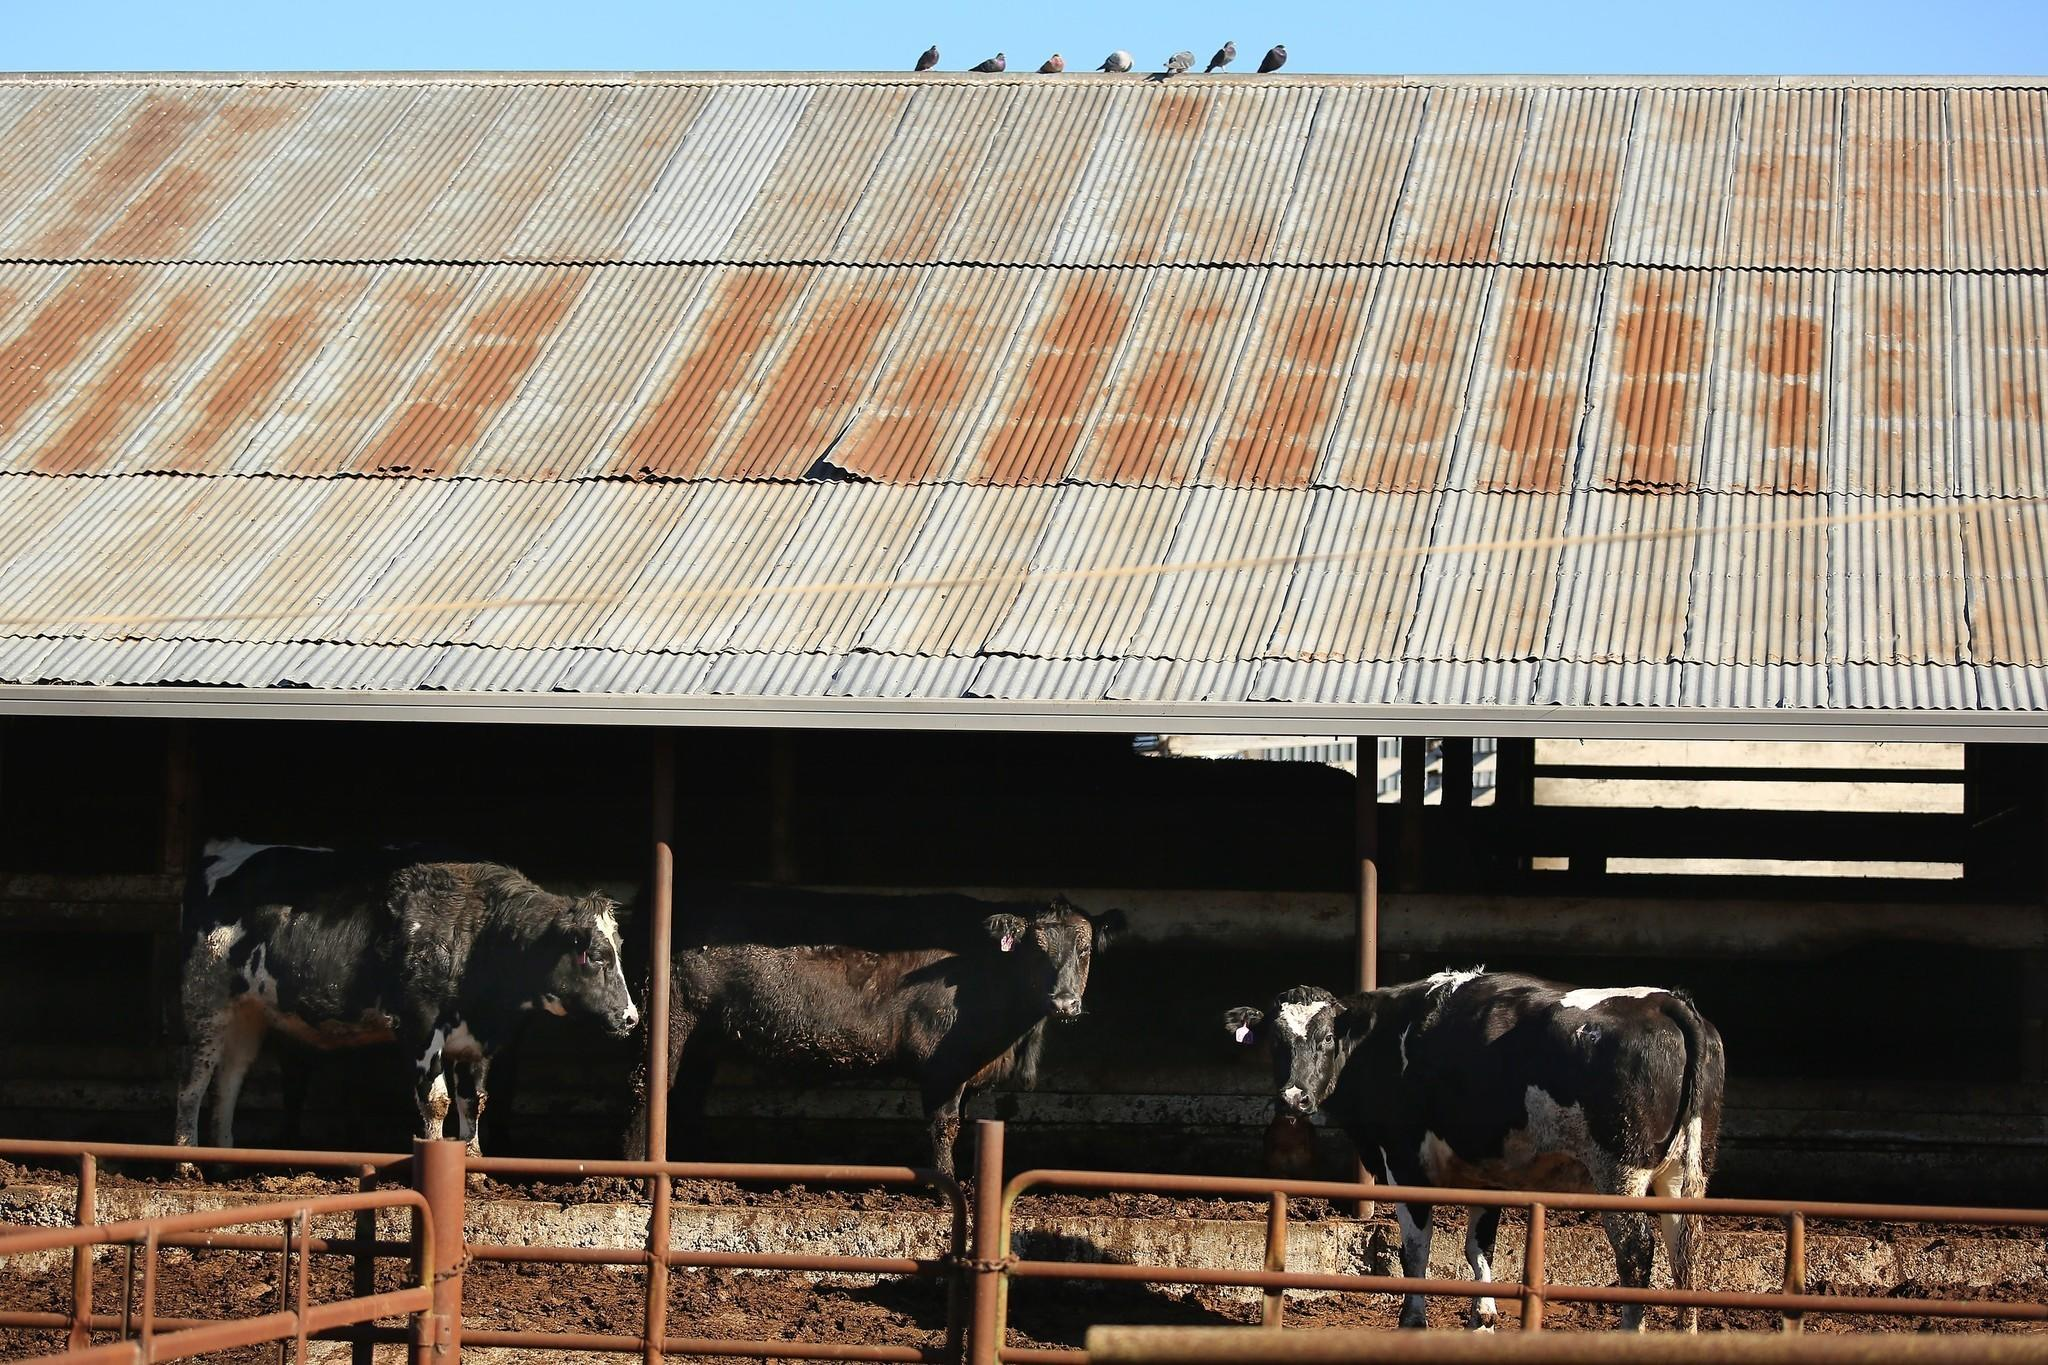 Documents obtained by The Times show that Rancho Feeding Corp., a Bay Area slaughterhouse at the center of a massive beef recall, processed cows that had cancer. Above, cows wait to be butchered at Rancho Feeding in Petaluma, Calif., in January.